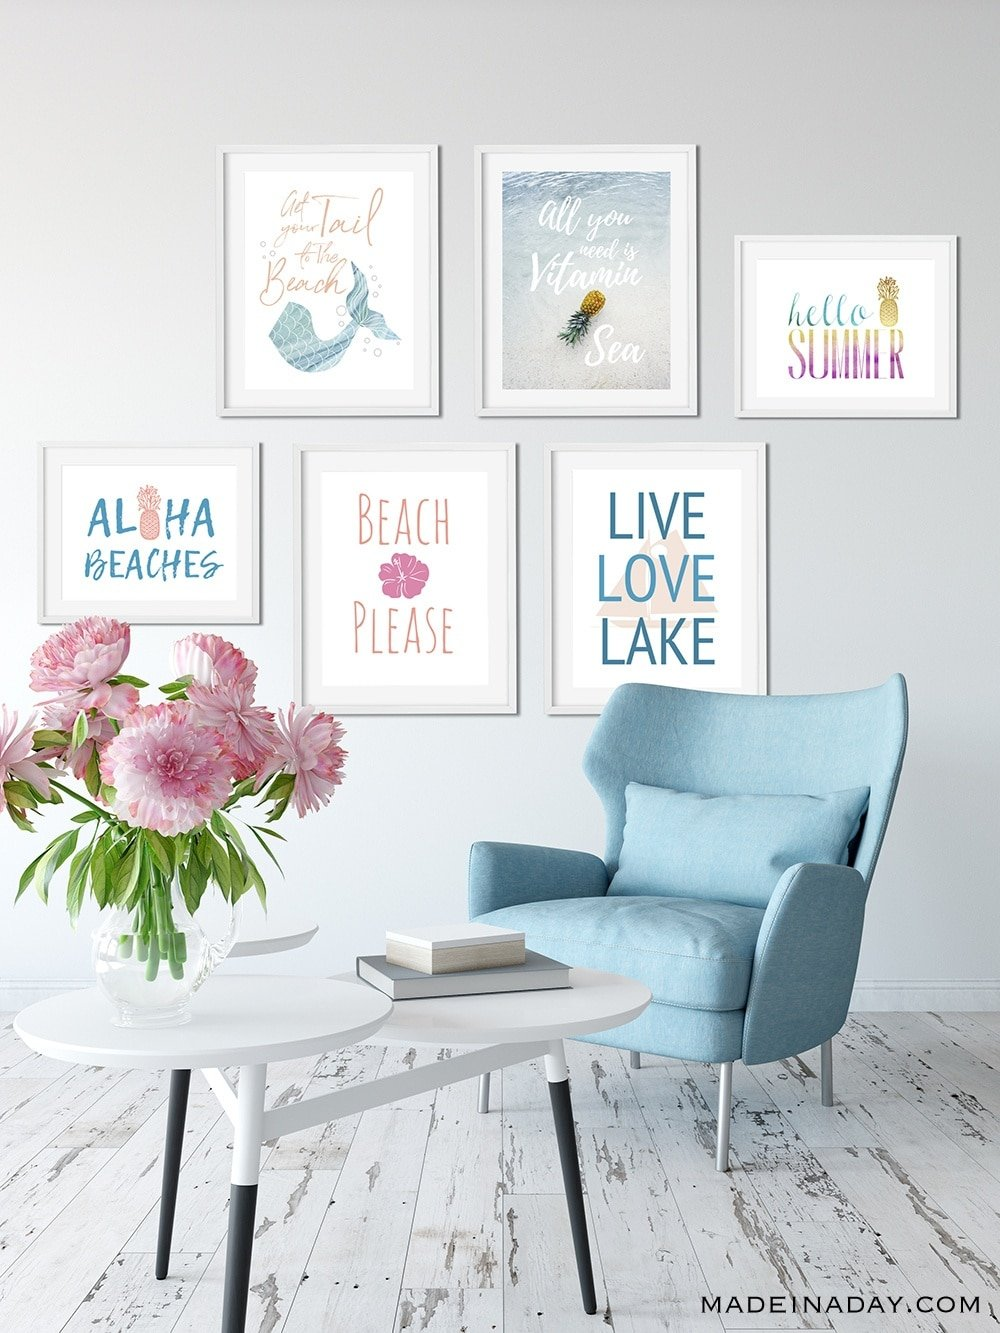 Summer Home Decor Printable Wall Art, beach please, Live Love Lake, Aloha Beaches, get your tail to the beach, all you need is vitamin Sea,